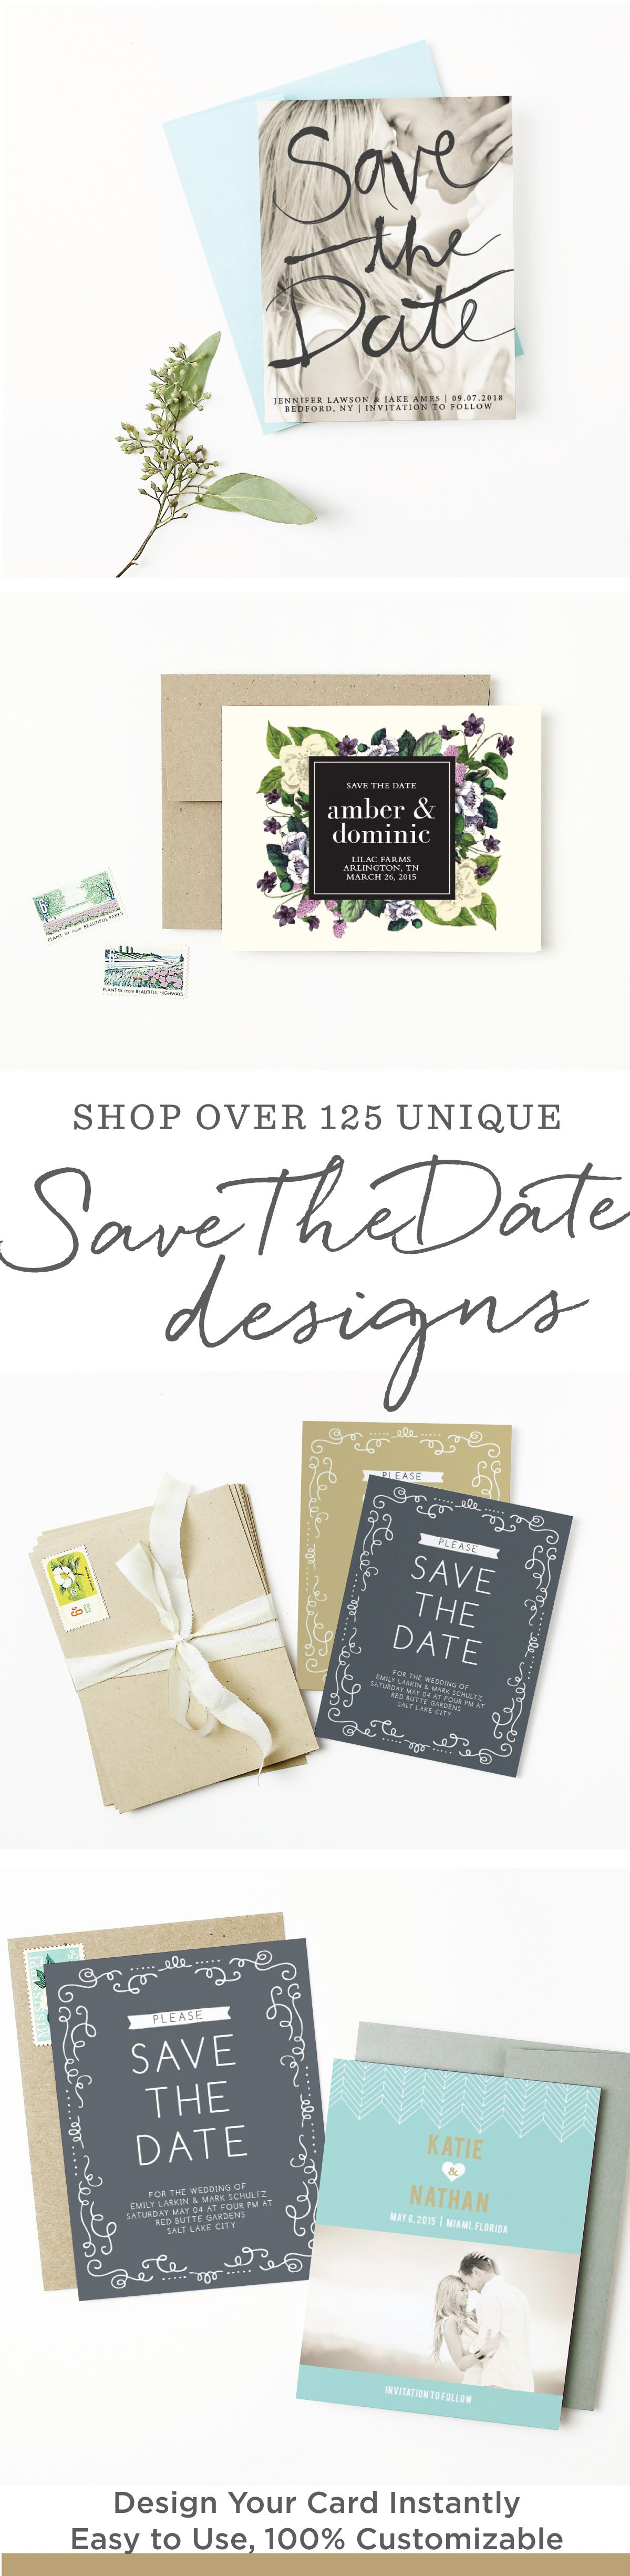 Save The Date Cards | 1000+ Designs at 15% Off